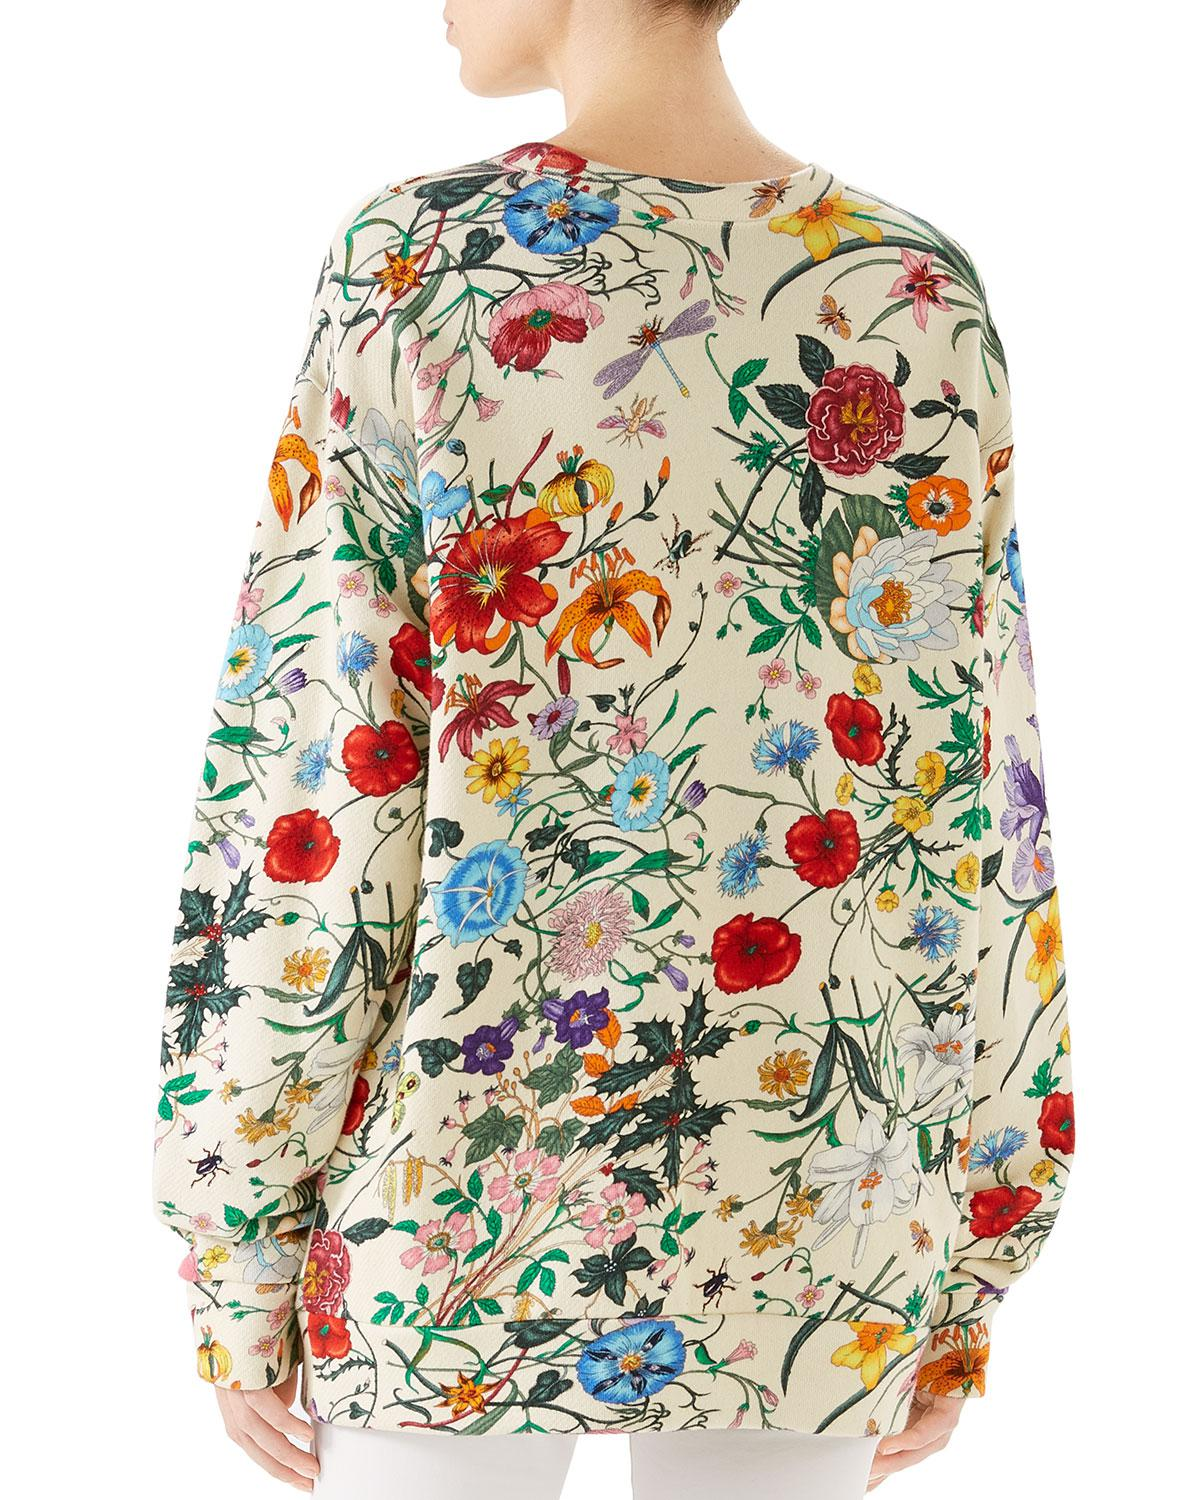 a595a48562a0 Lyst - Gucci Oversize Sweatshirt With Print in White